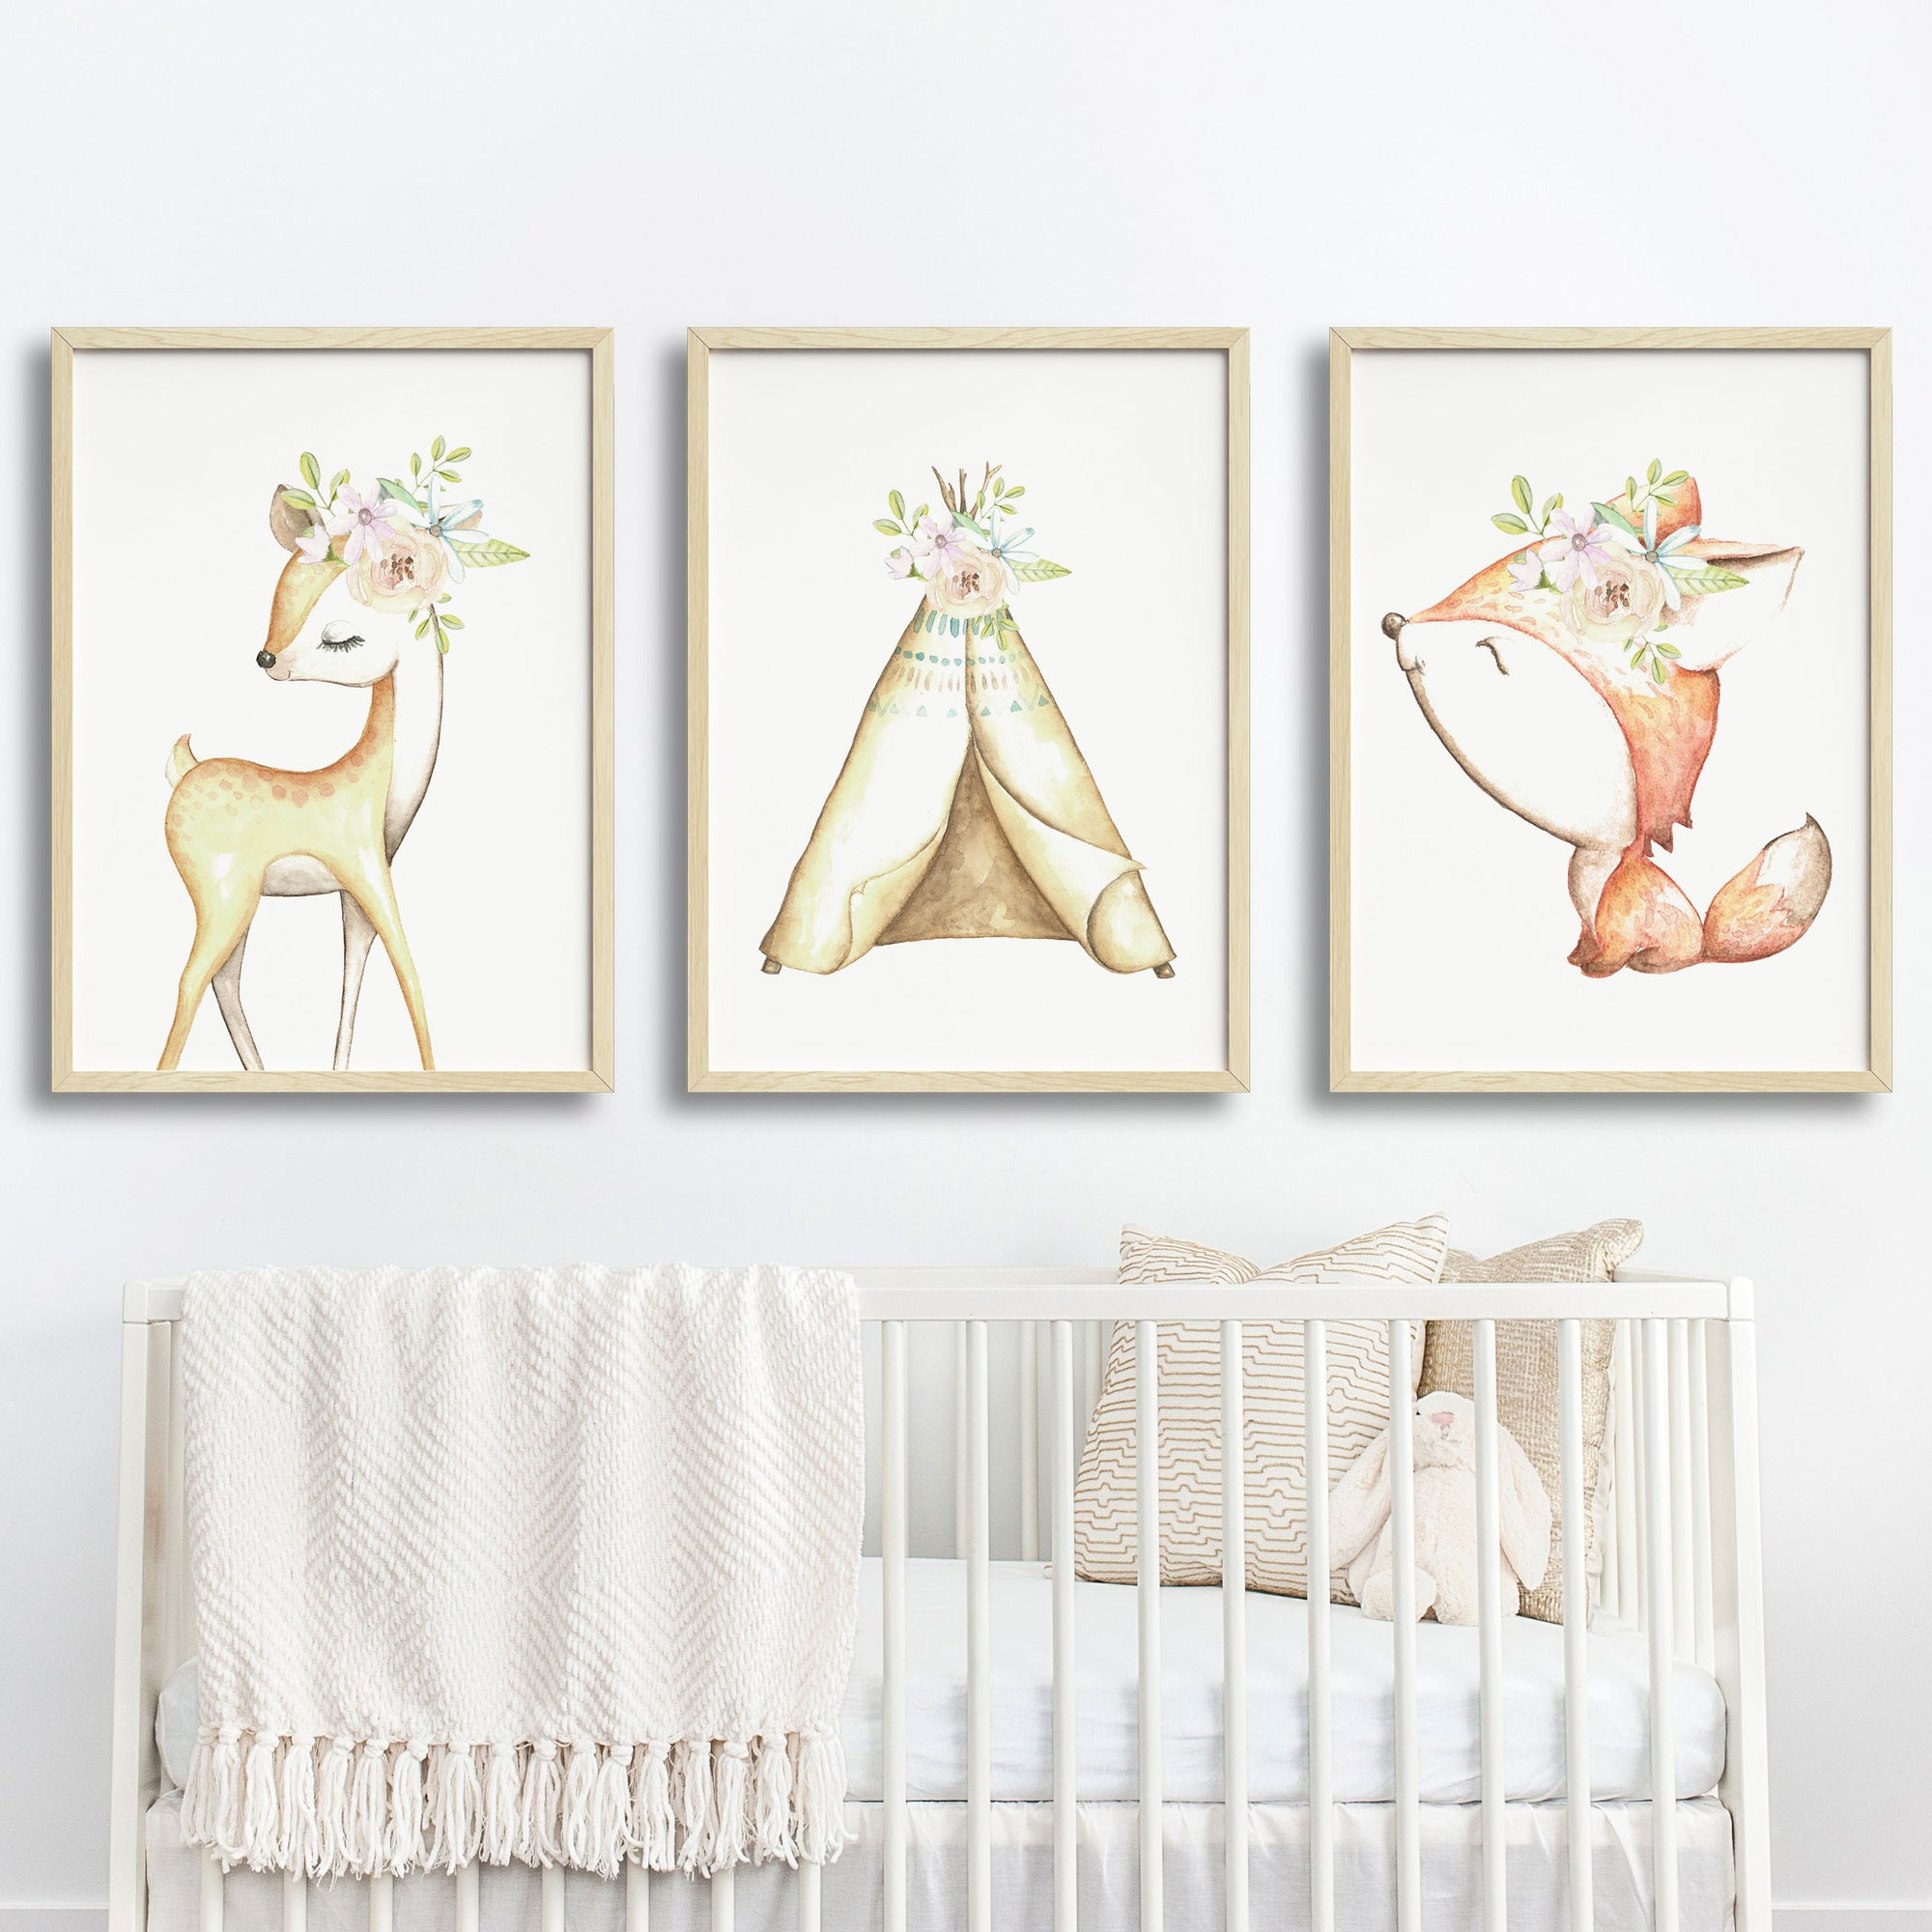 Baby, Girls Floral Woodland Nursery or Bedroom Wall Art Decor Print Set- Deer, Fox & Teepee